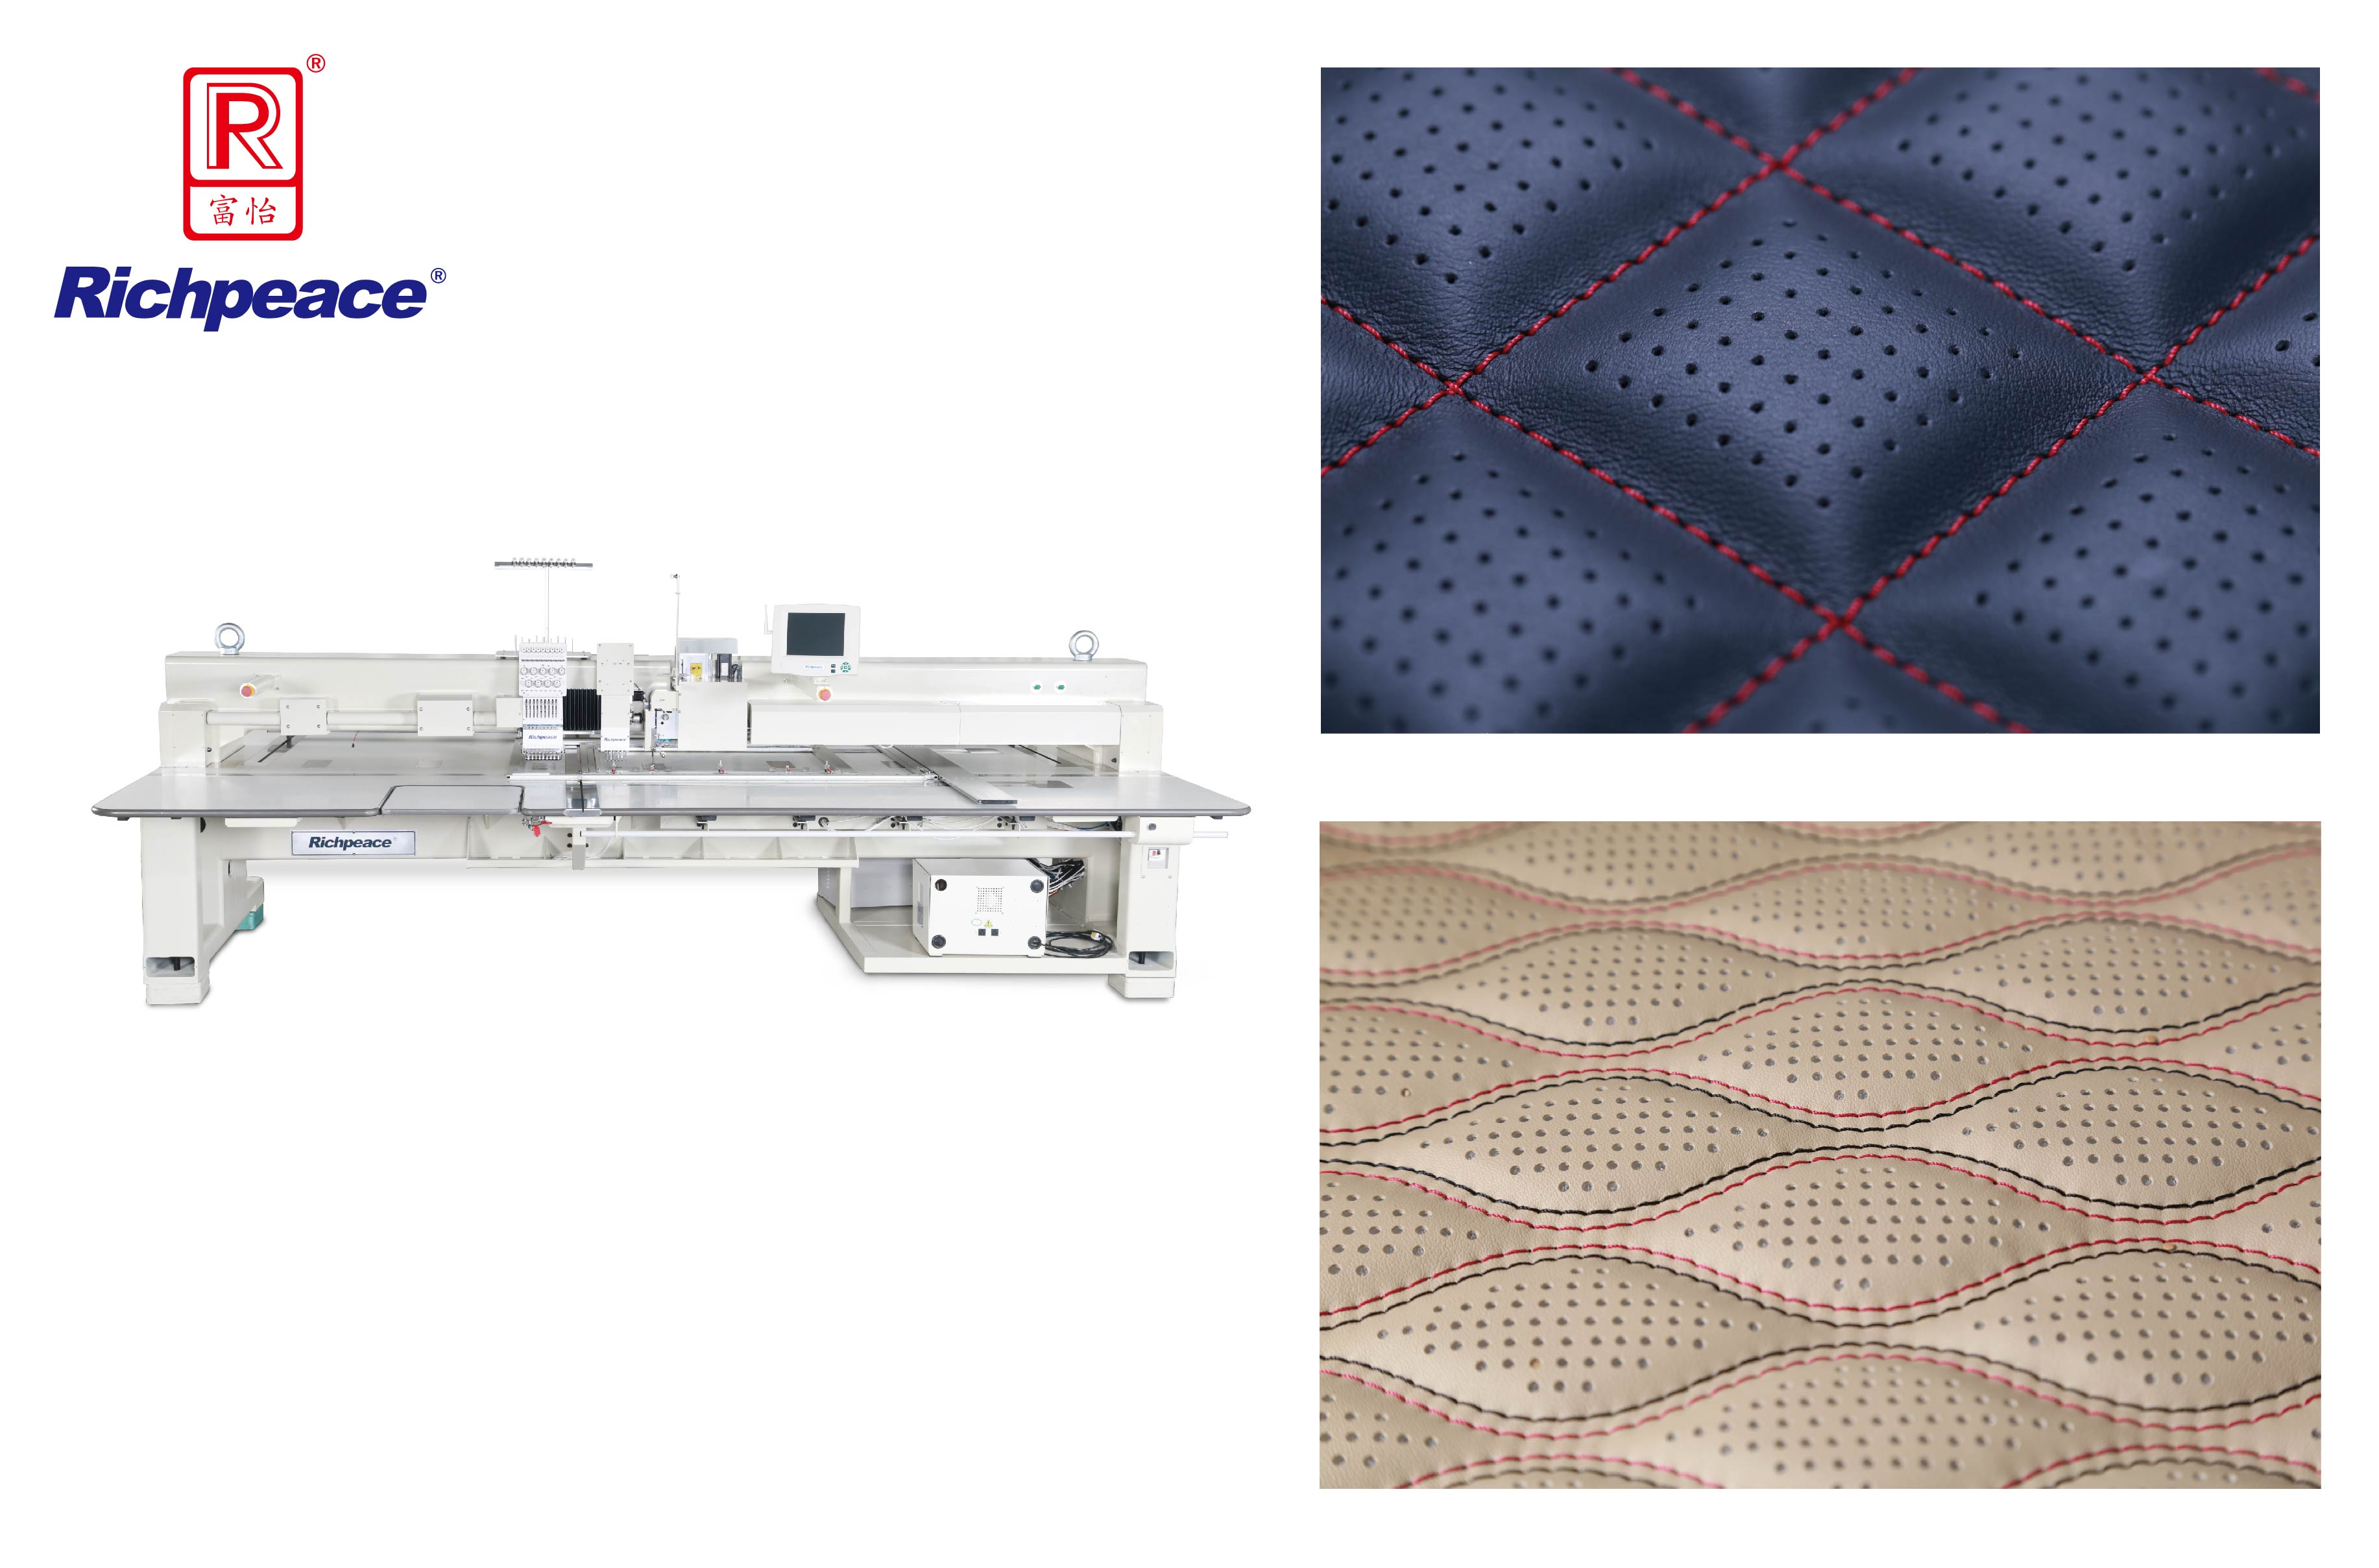 Richpeace Automatic Perforation and Embroidery Sewing machine